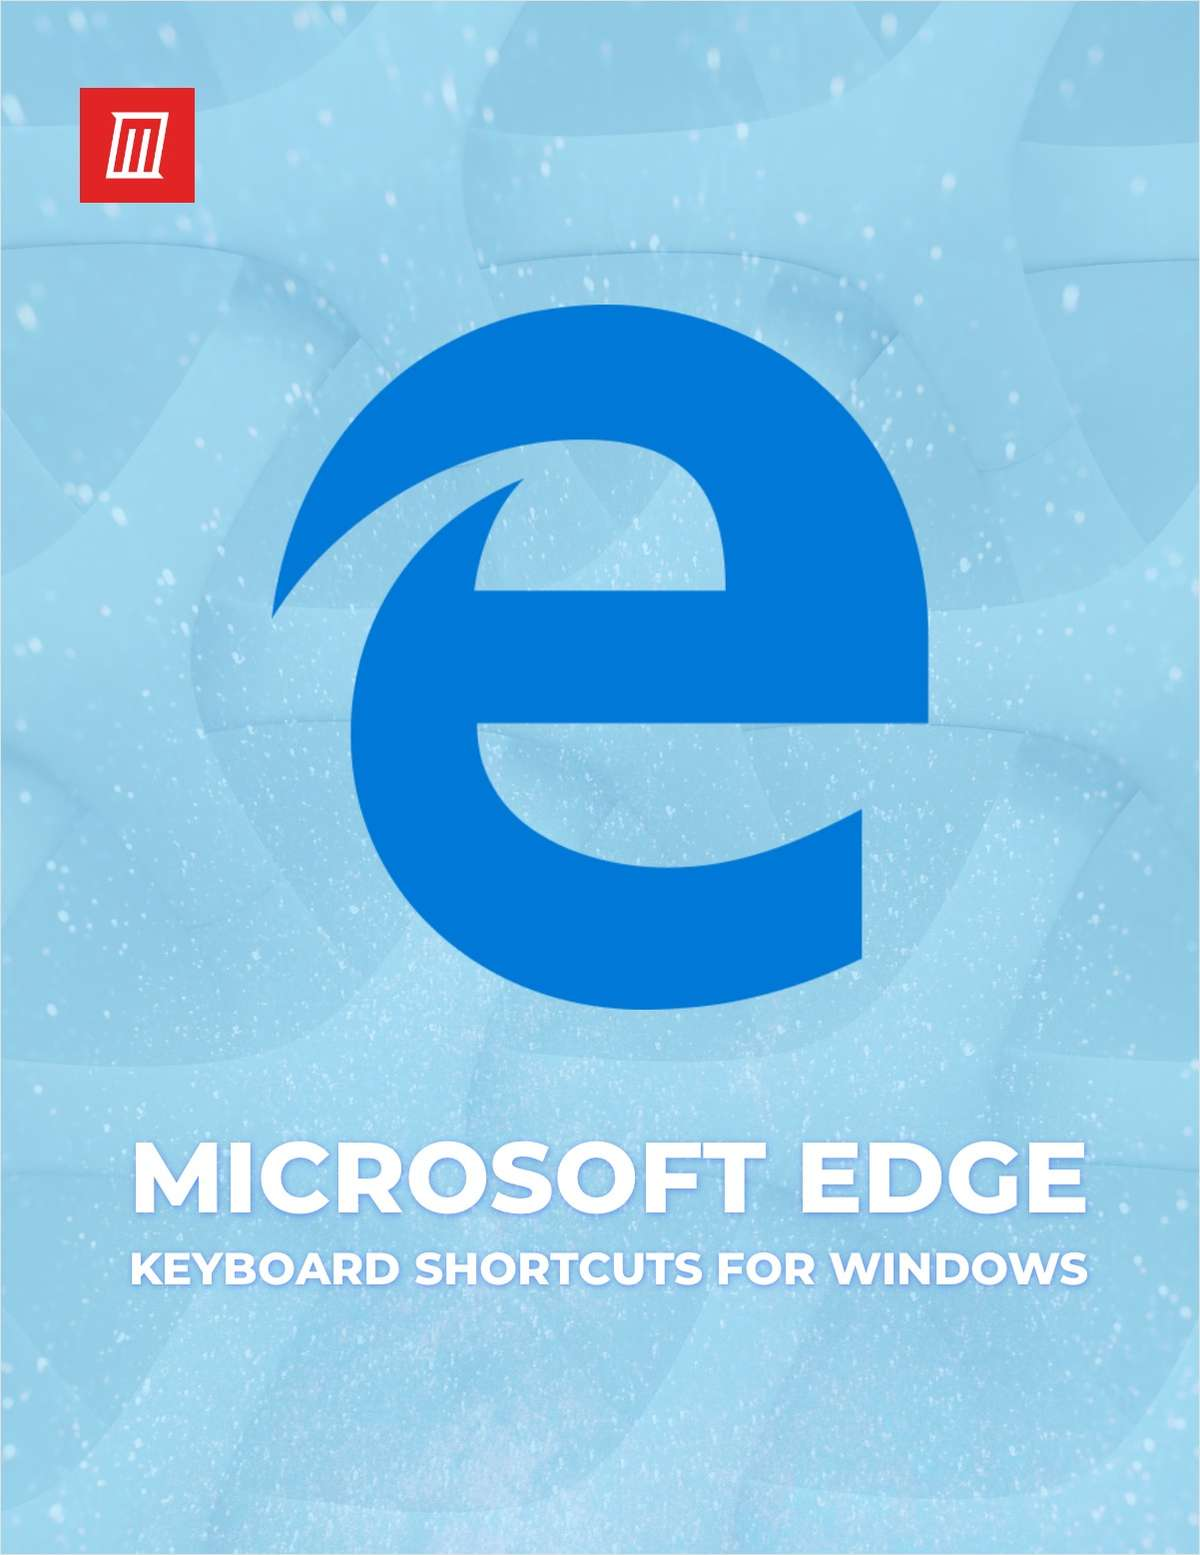 Microsoft Edge Keyboard Shortcuts for Windows